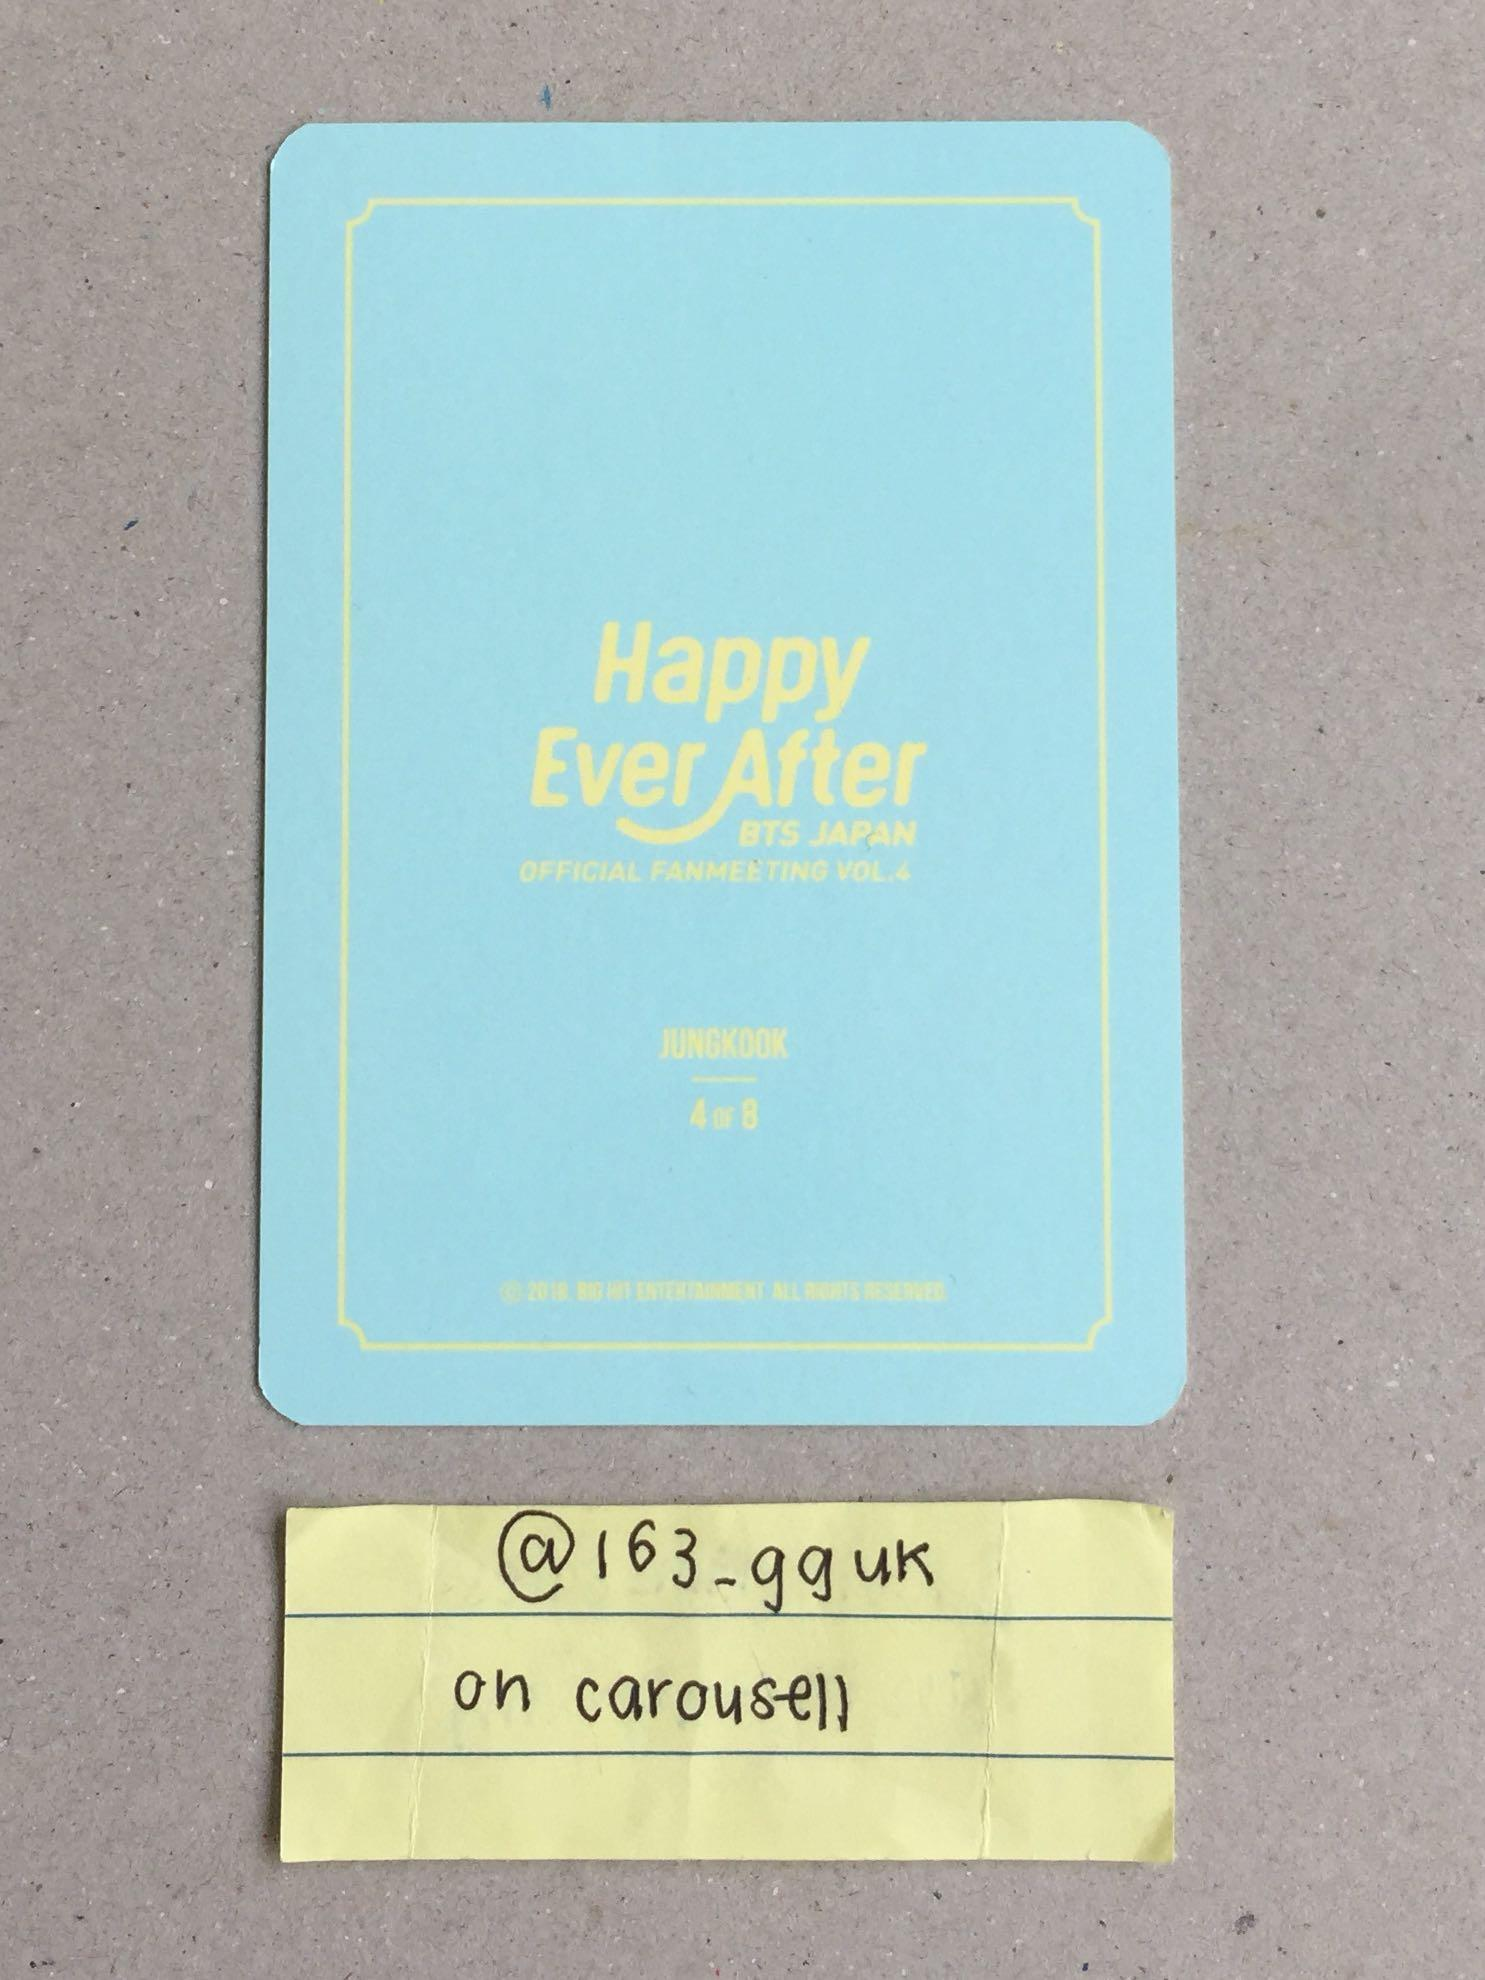 bts 4th japan  muster HEA / japan fm vol 4 happy ever after jungkook 4/8 mini pc